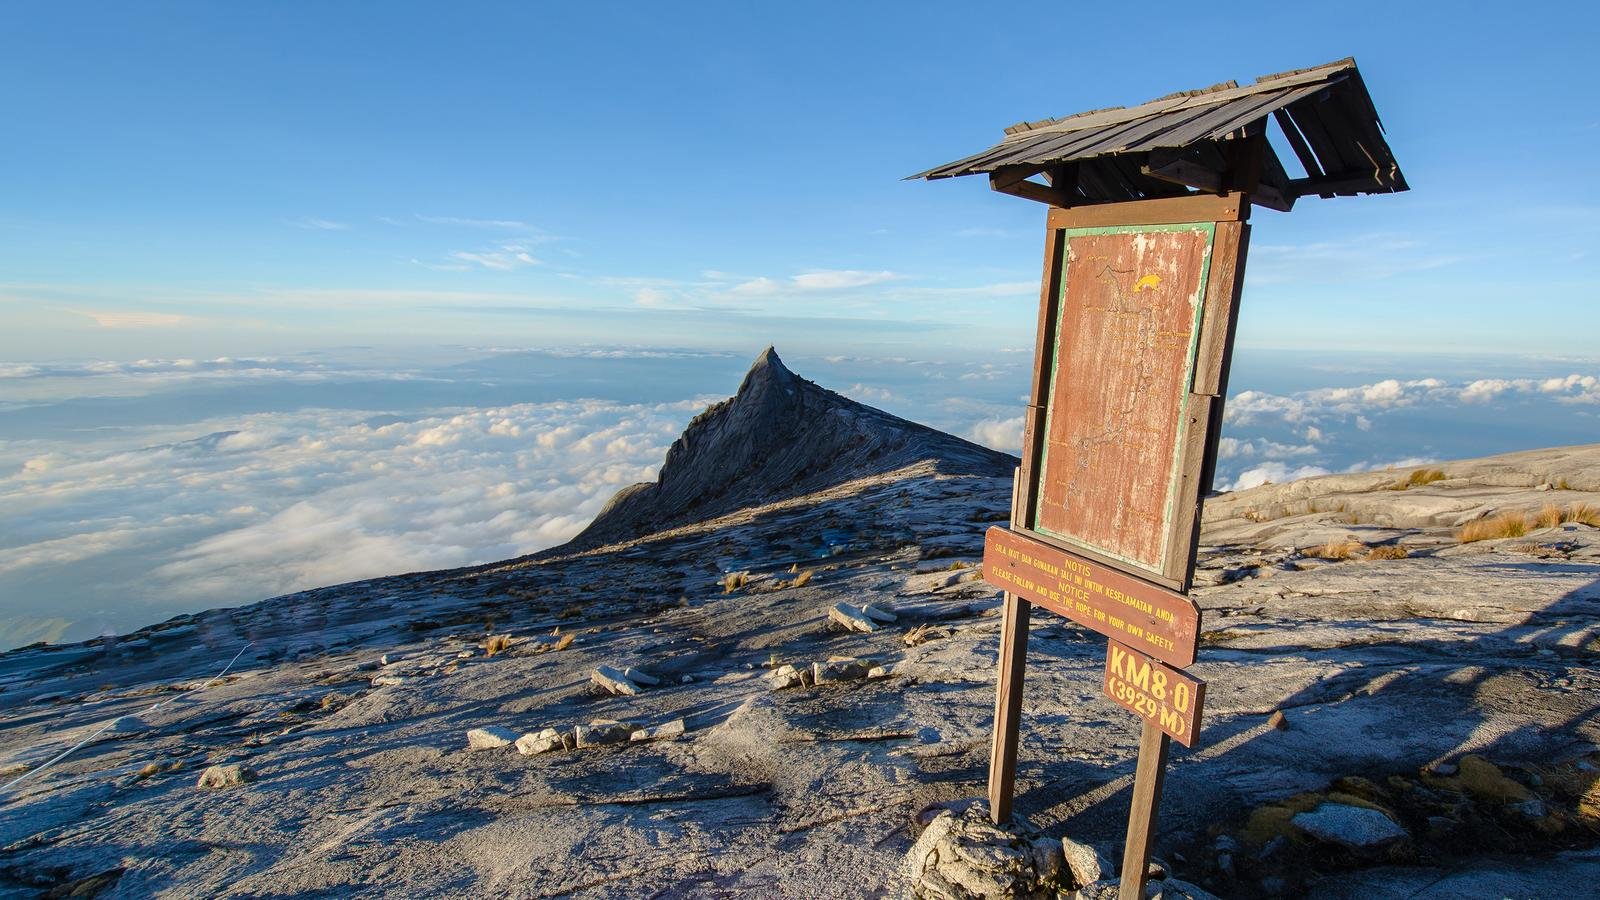 Trek Mt Kinabalu in Borneo Asia G Adventures